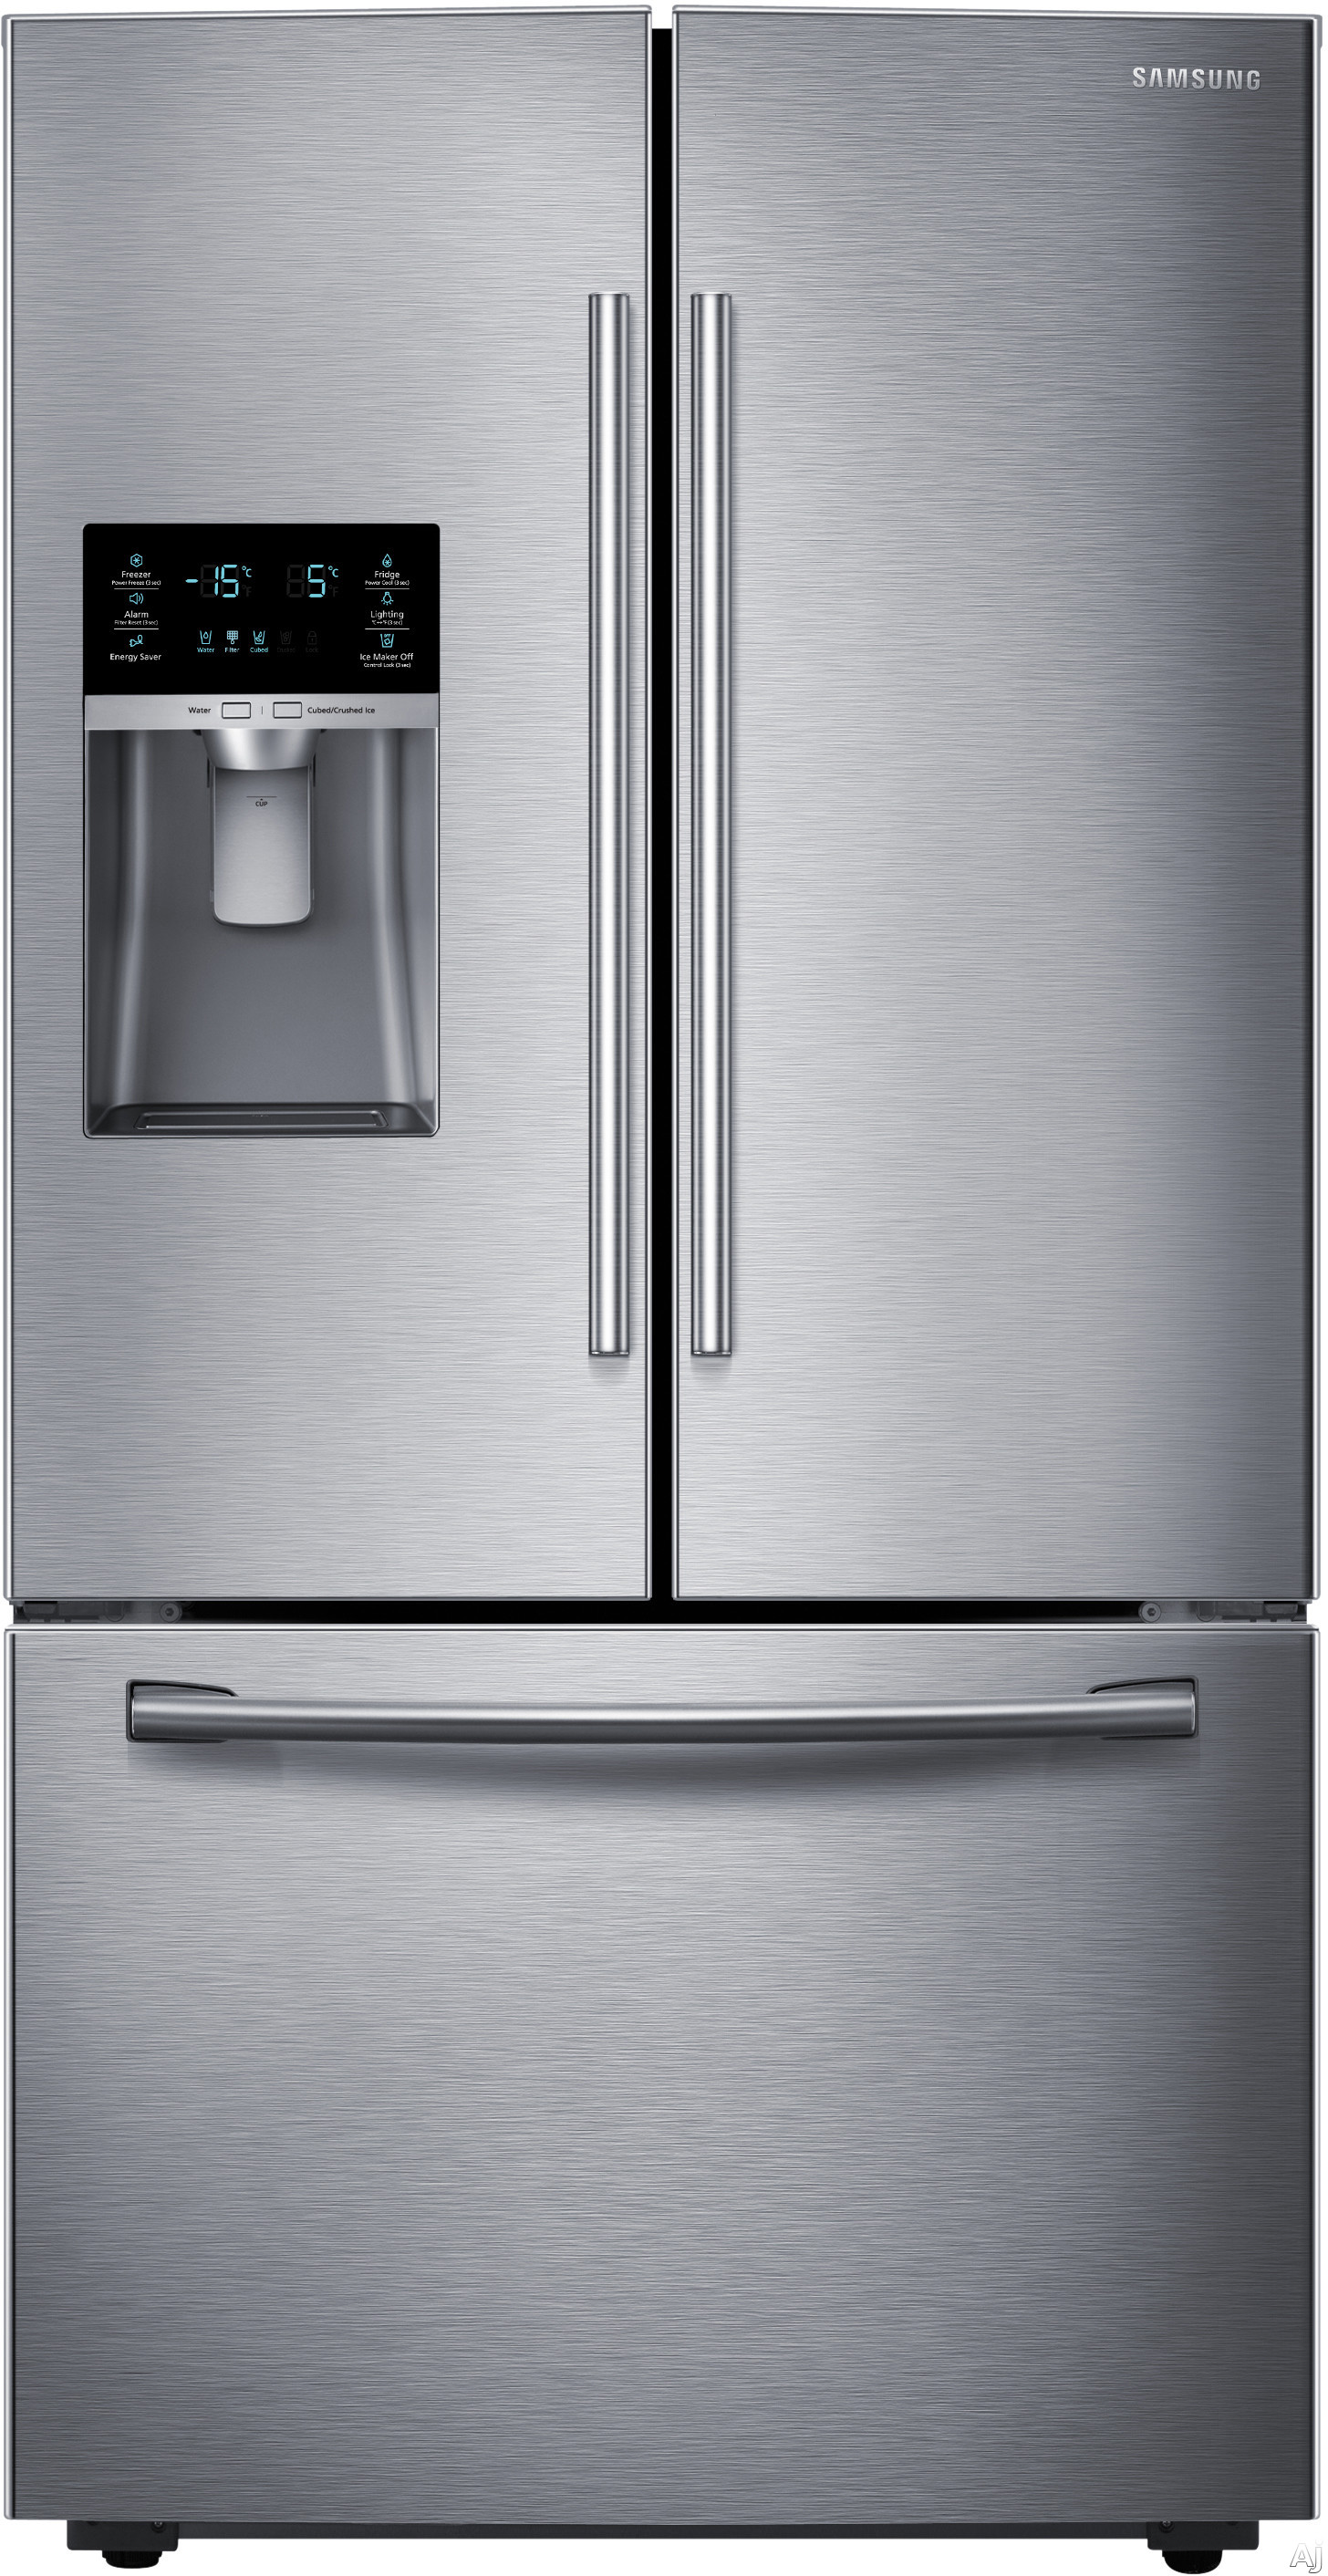 Samsung RF28HFEDB 36 Inch French Door Refrigerator with CoolSelect Pantry, Twin Cooling Plus, Ice Master, 28 cu. ft. Capacity, 4 Adjustable Glass Spill-Proof Shelves, LED Lighting, External Water/Ice Dispenser and Energy Star Qualified